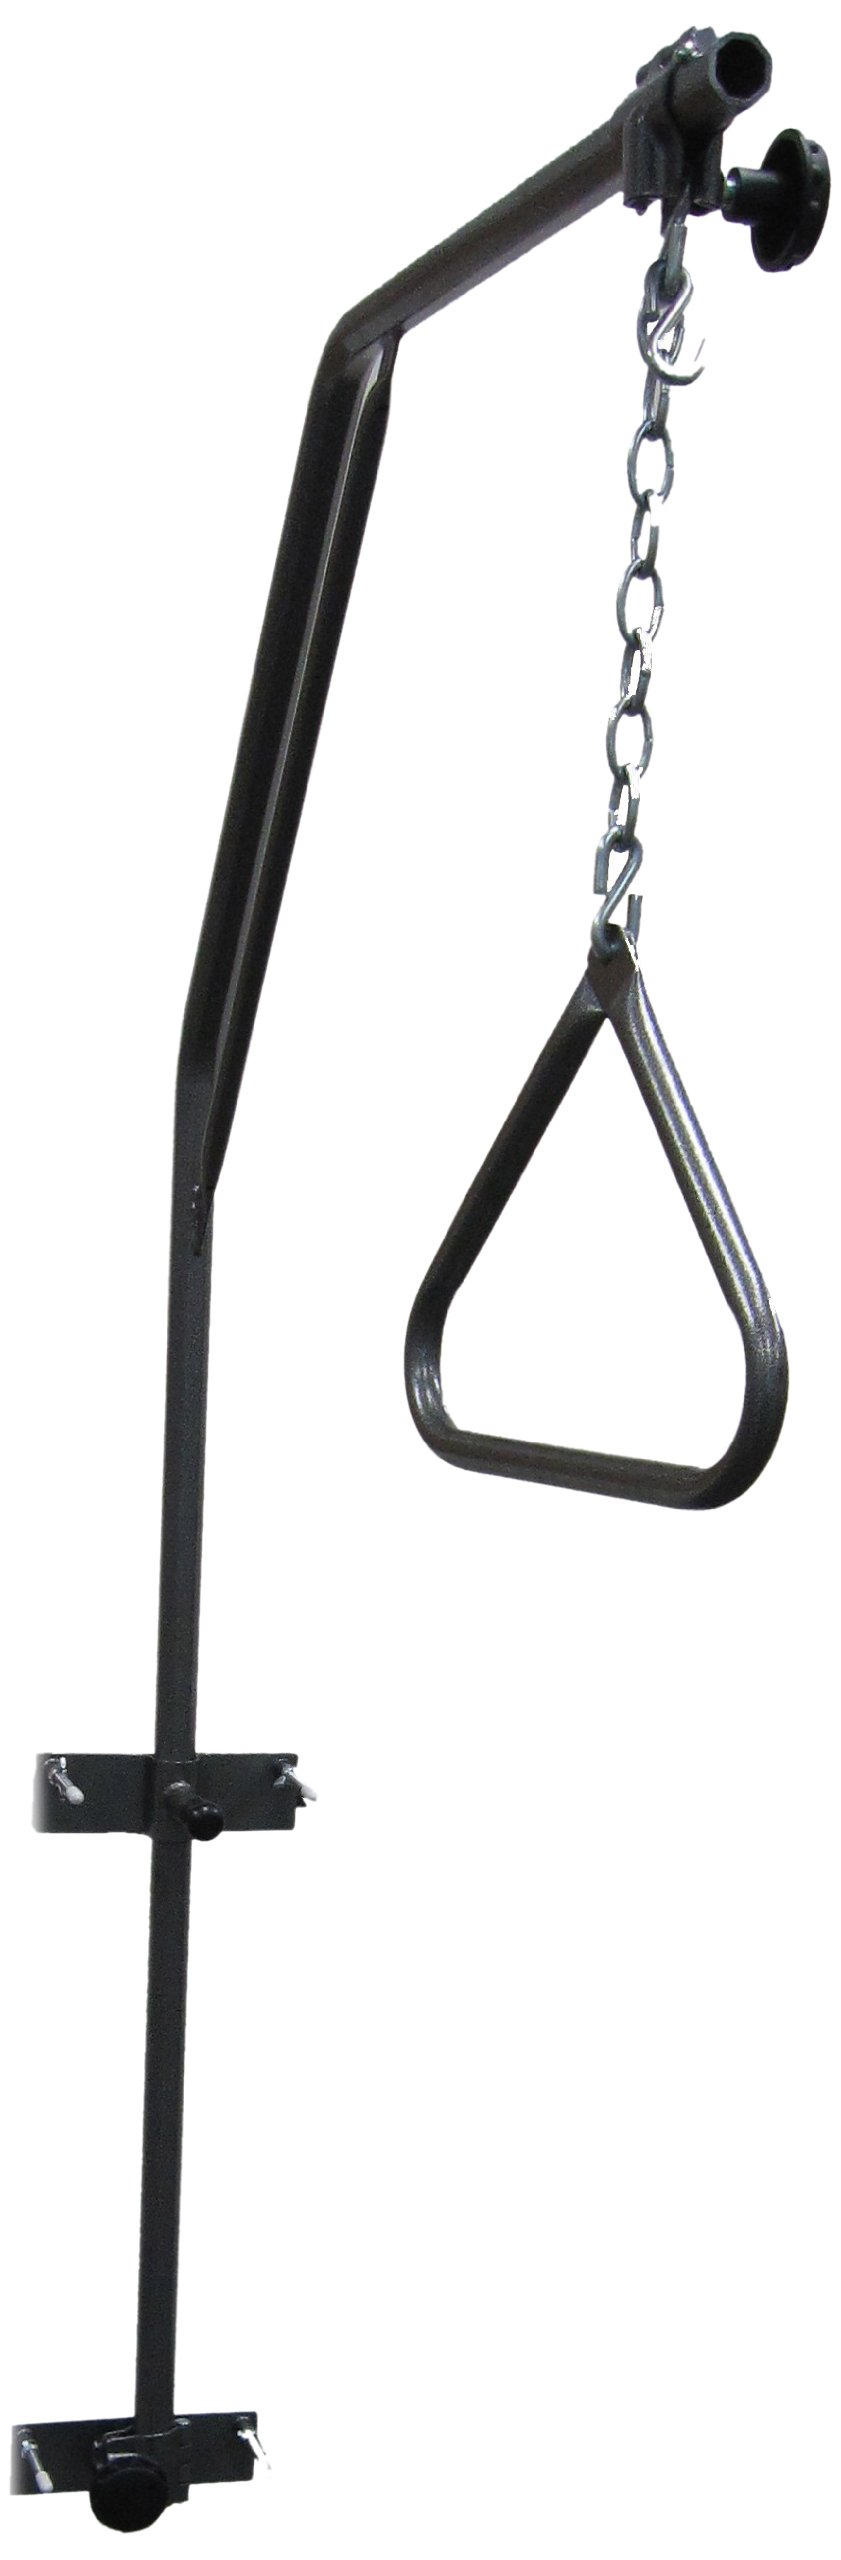 Medline Trapeze Bar Attachment To Bed